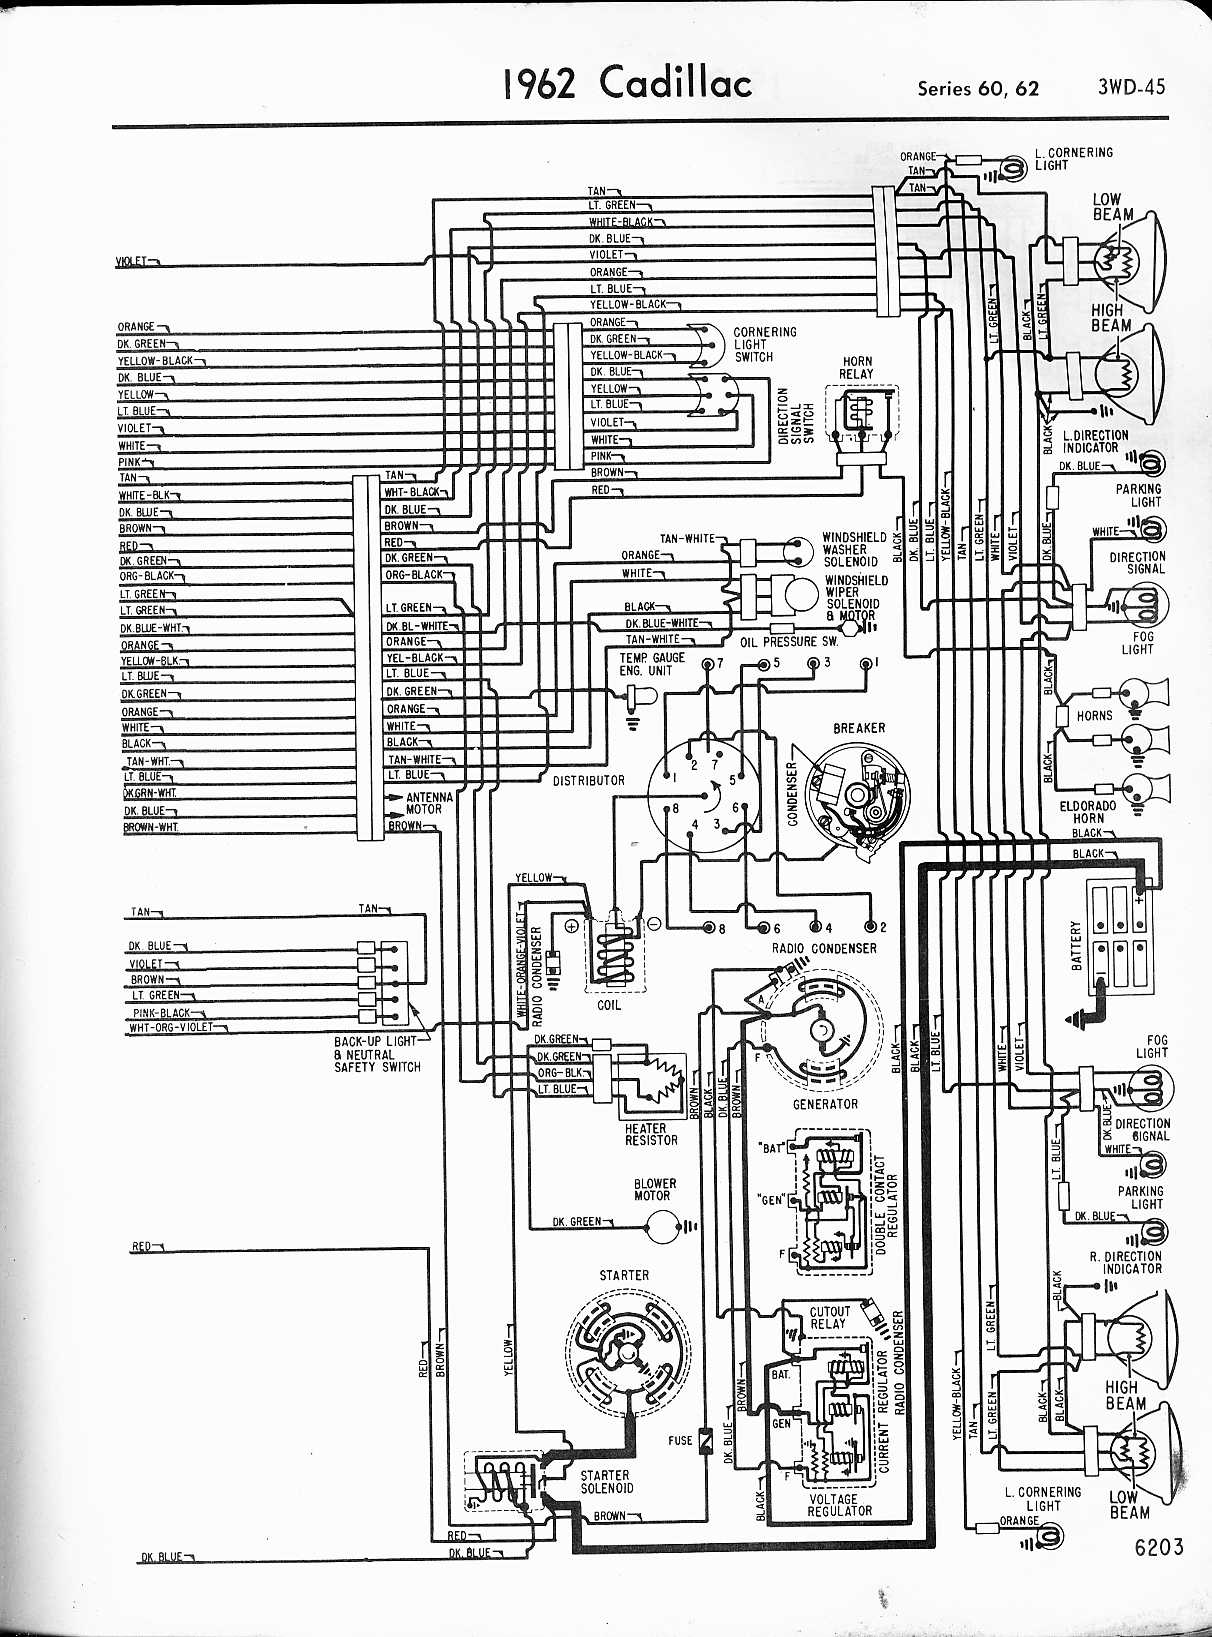 cadillac wiring diagrams 1957 1965 1979 Dodge Van Wiring Diagram  1979 Ford F250 Wiring Diagram 1999 Cadillac DeVille Radio Wiring Diagram 1979 Porsche 928 Wiring Diagram